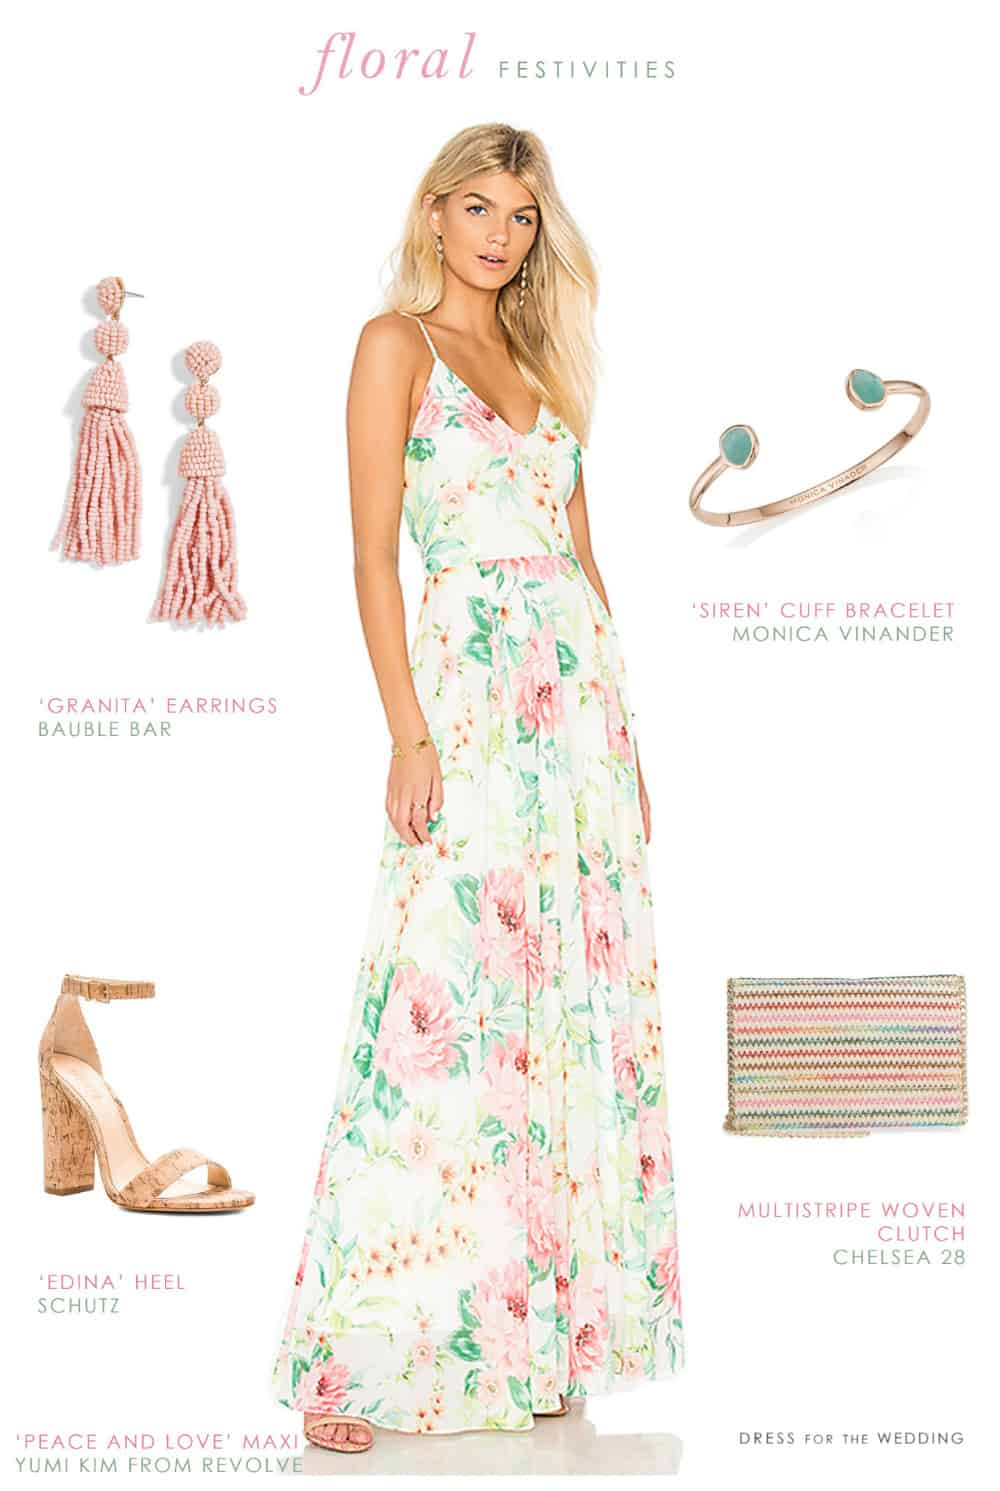 Styling a Ivory, Pink, and Green Floral Maxi Dress for Summer ...